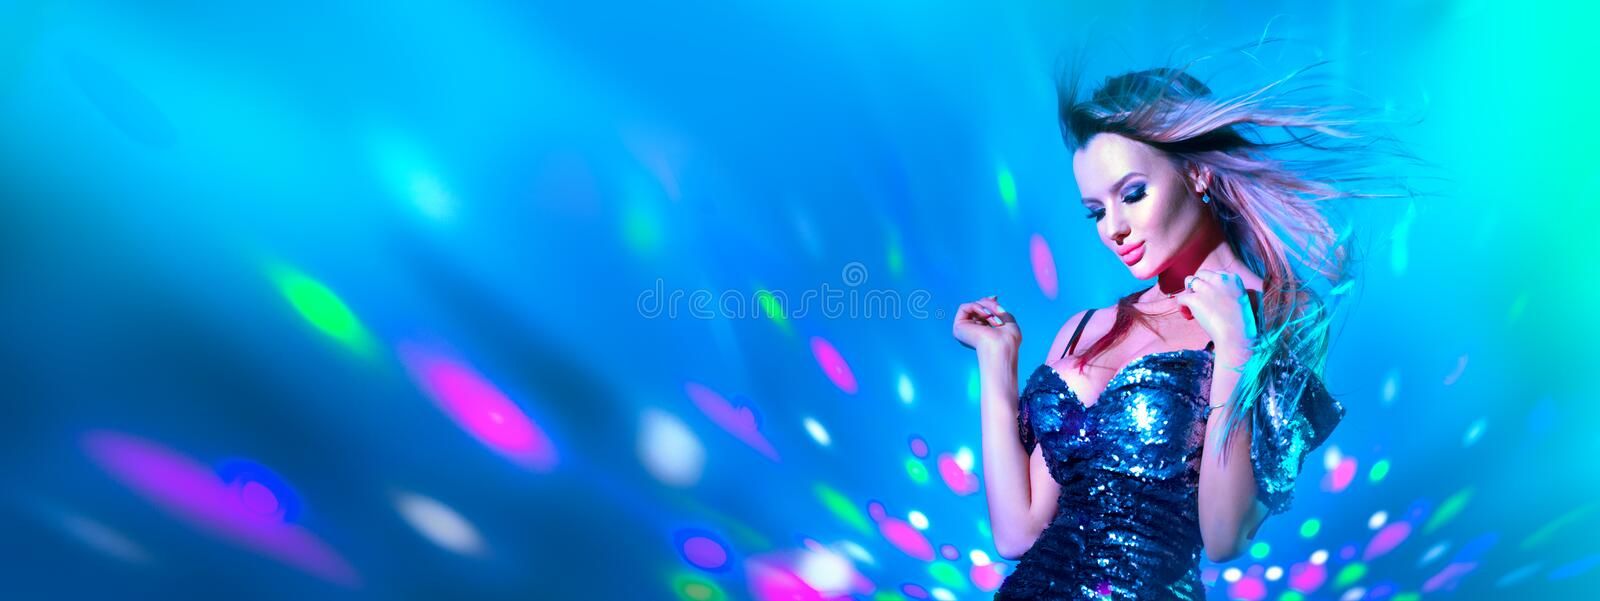 Fashion model sexy woman dancing in neon light. Disco dancer posing in UV colorful light. S royalty free stock image